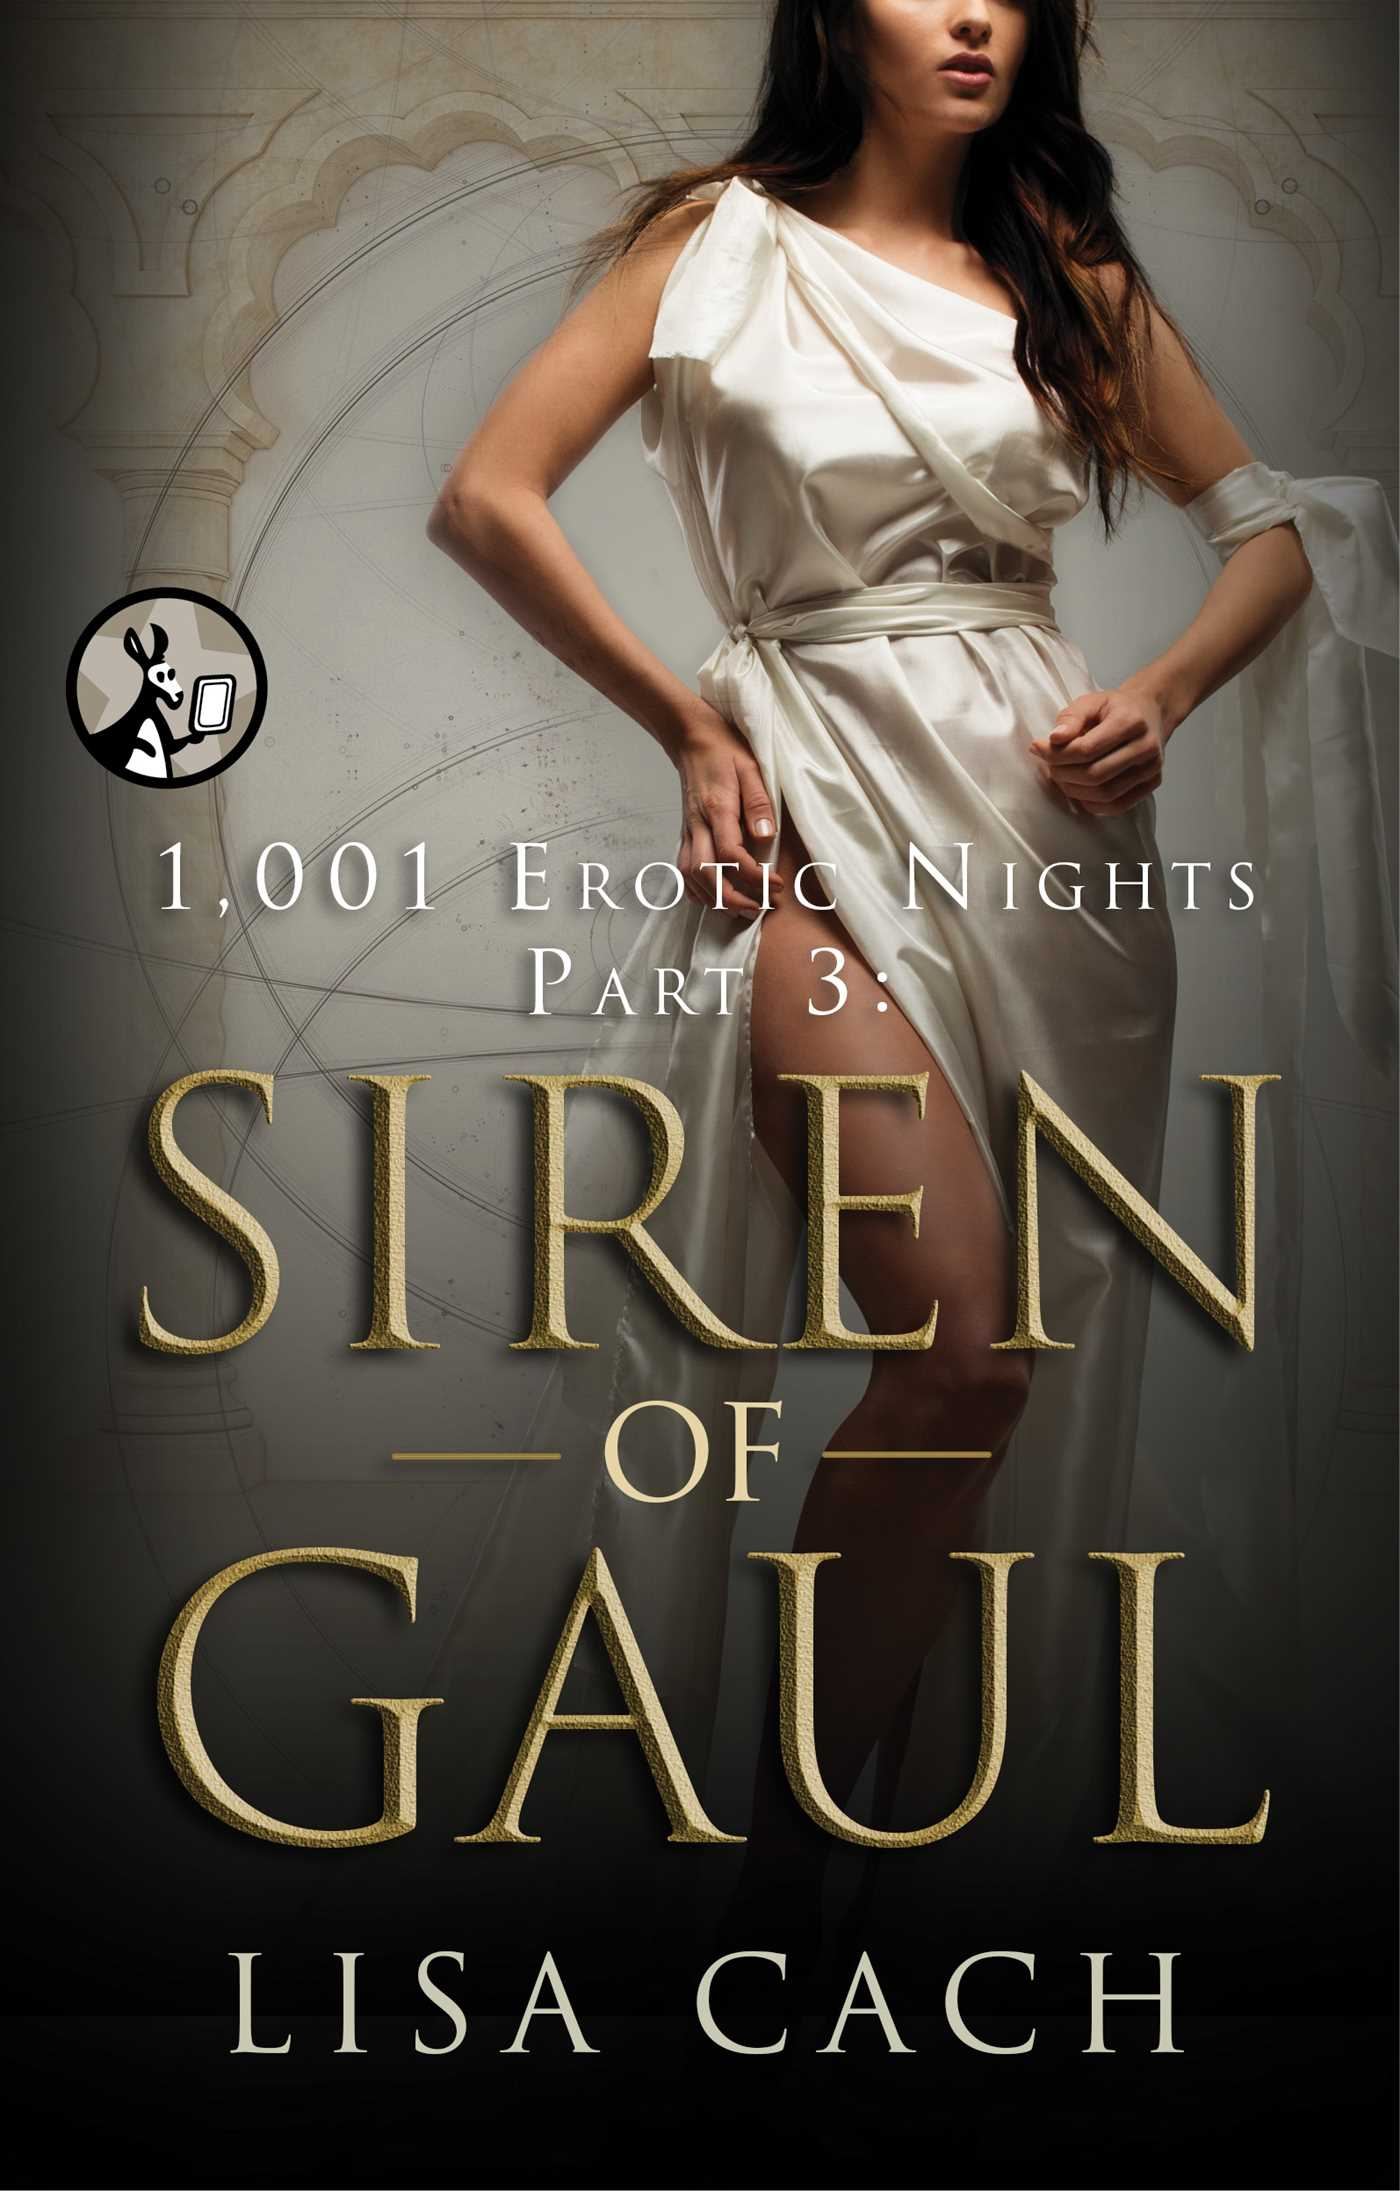 Siren of gaul 9781476775791 hr